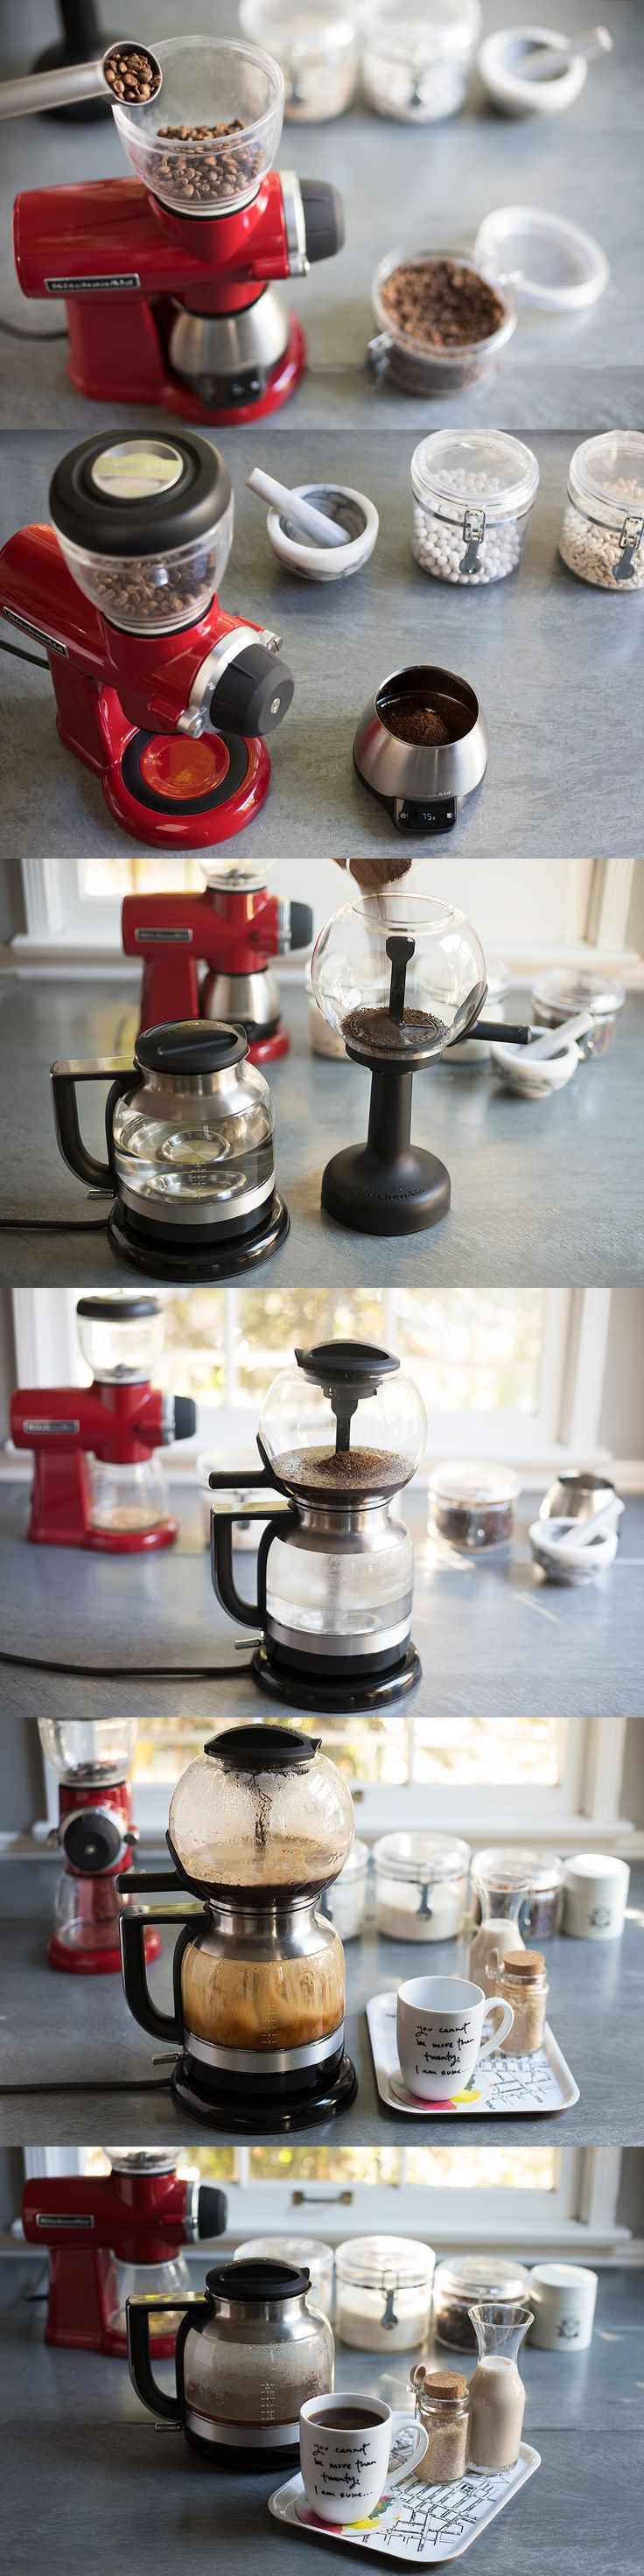 Best 25 Coffee maker with grinder ideas on Pinterest